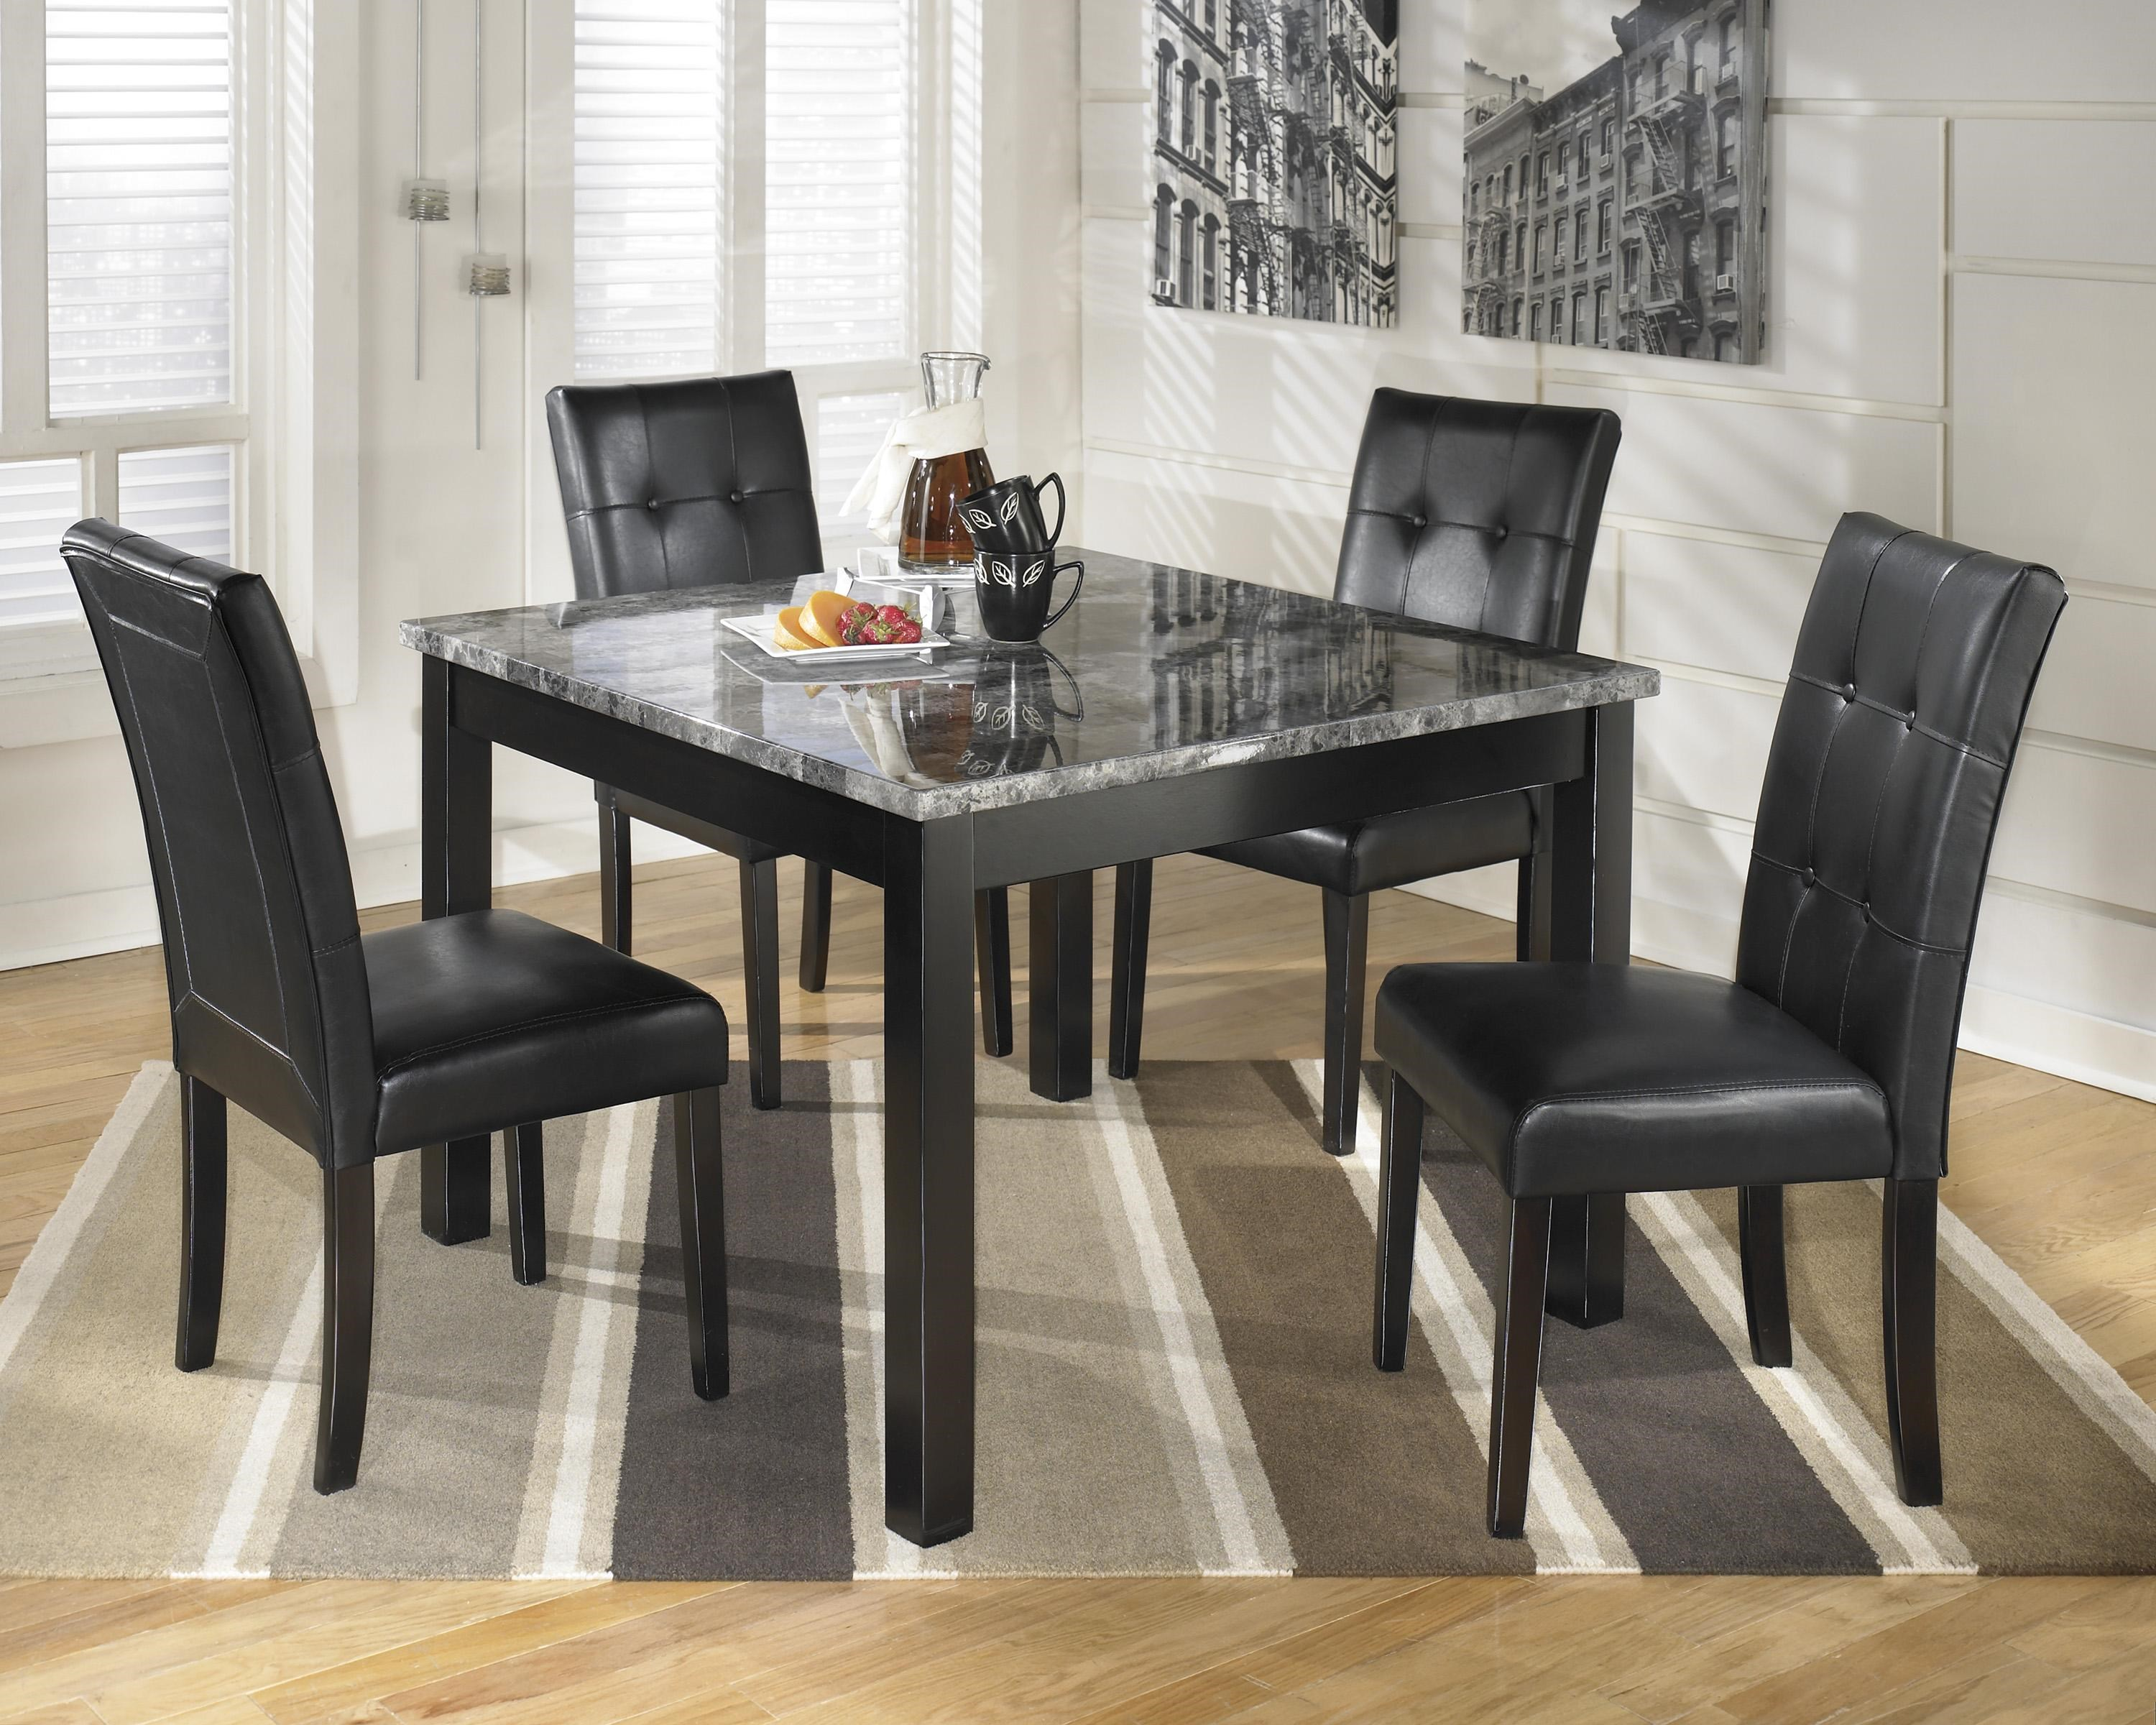 Awesome Signature Design By Ashley Maysville 5 Piece Square Dining Room Table Set  With Faux Marble Part 27